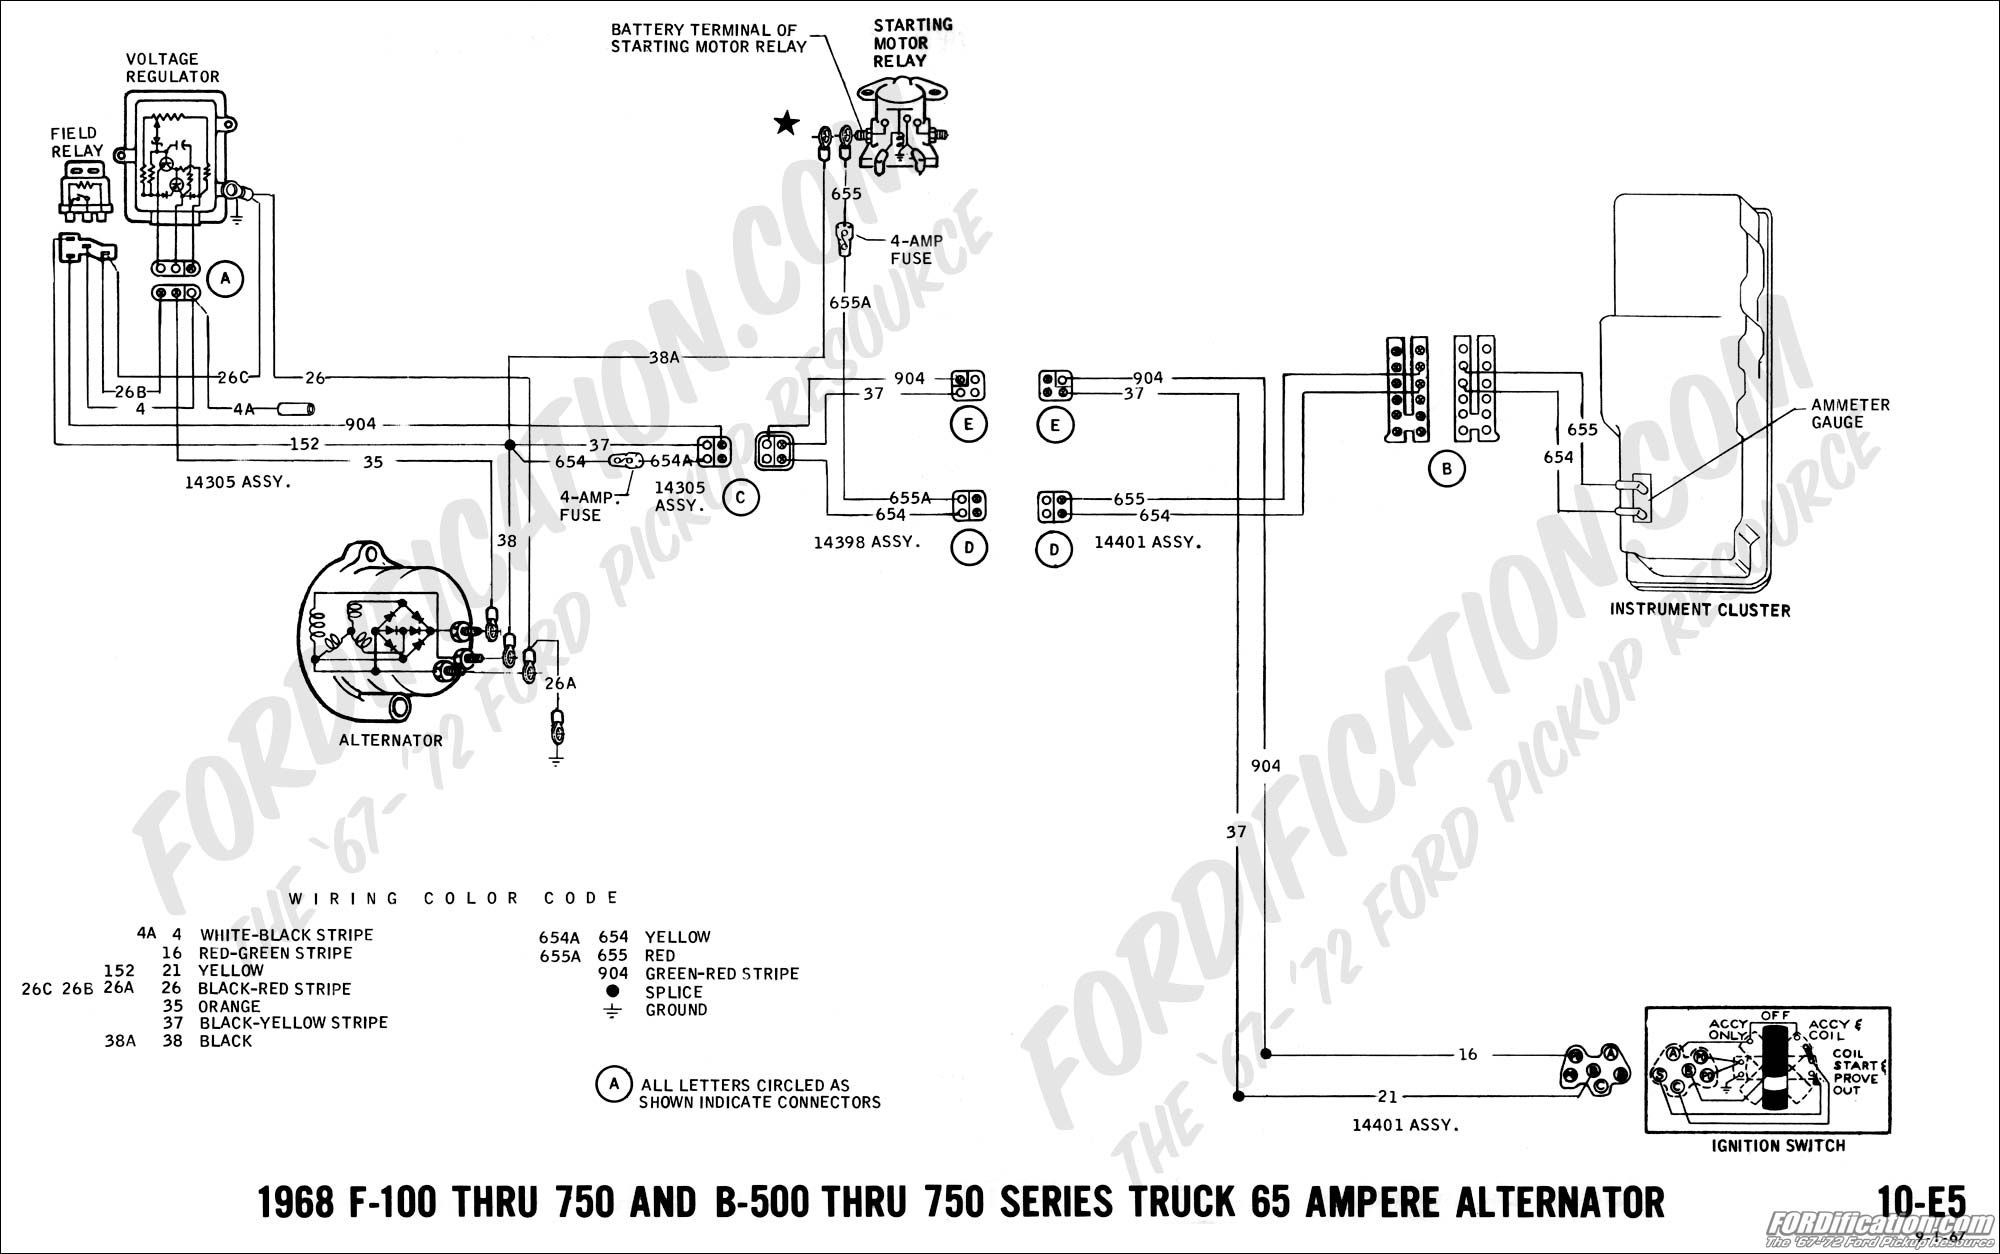 About Automotive Electrical Wiring Schematic